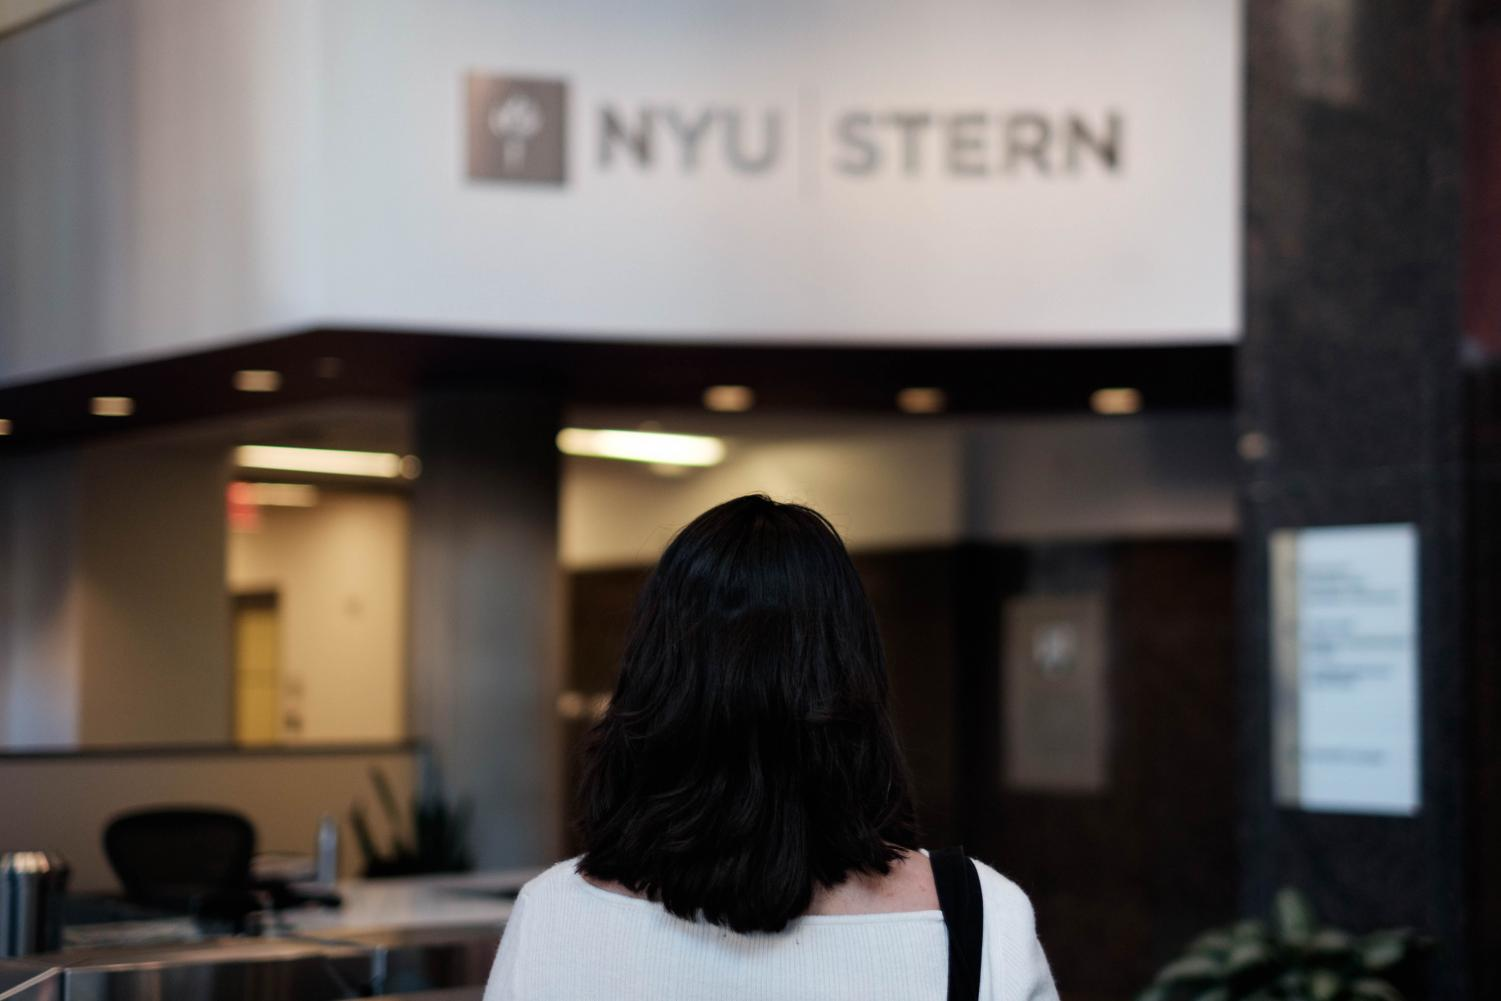 A Muslim student standing in the lobby of the Henry Kaufman Management Center. Stern has recently gained attention from the larger NYU community due to instances of Islamophobia and discrimination.